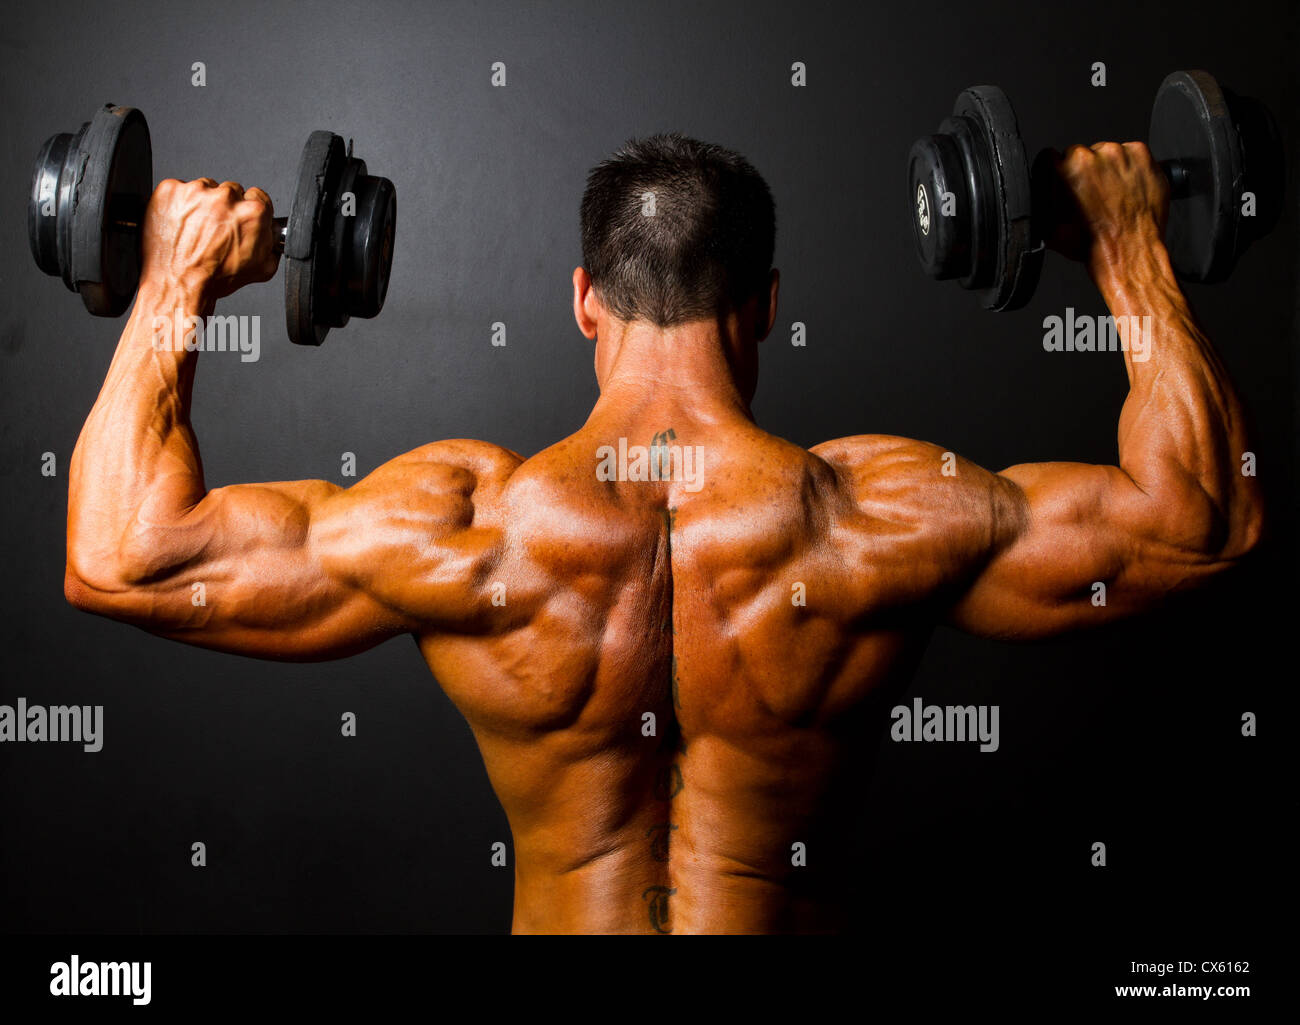 rear view of bodybuilder training with dumbbells on black background - Stock Image